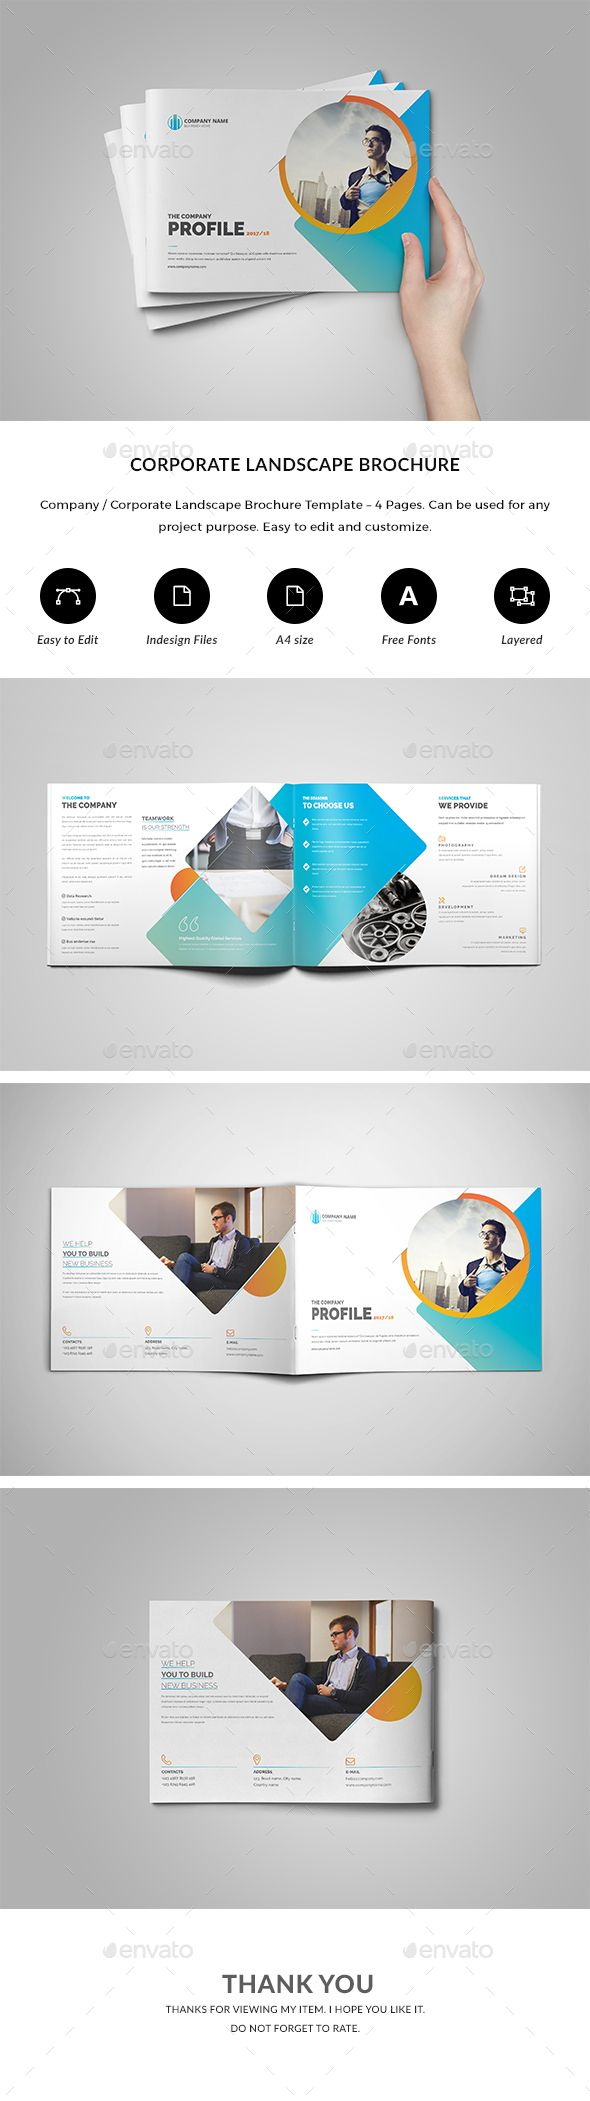 Brochure Templates For Pages | Company Corporate Landscape Brochure 4 Pages Brochures Print